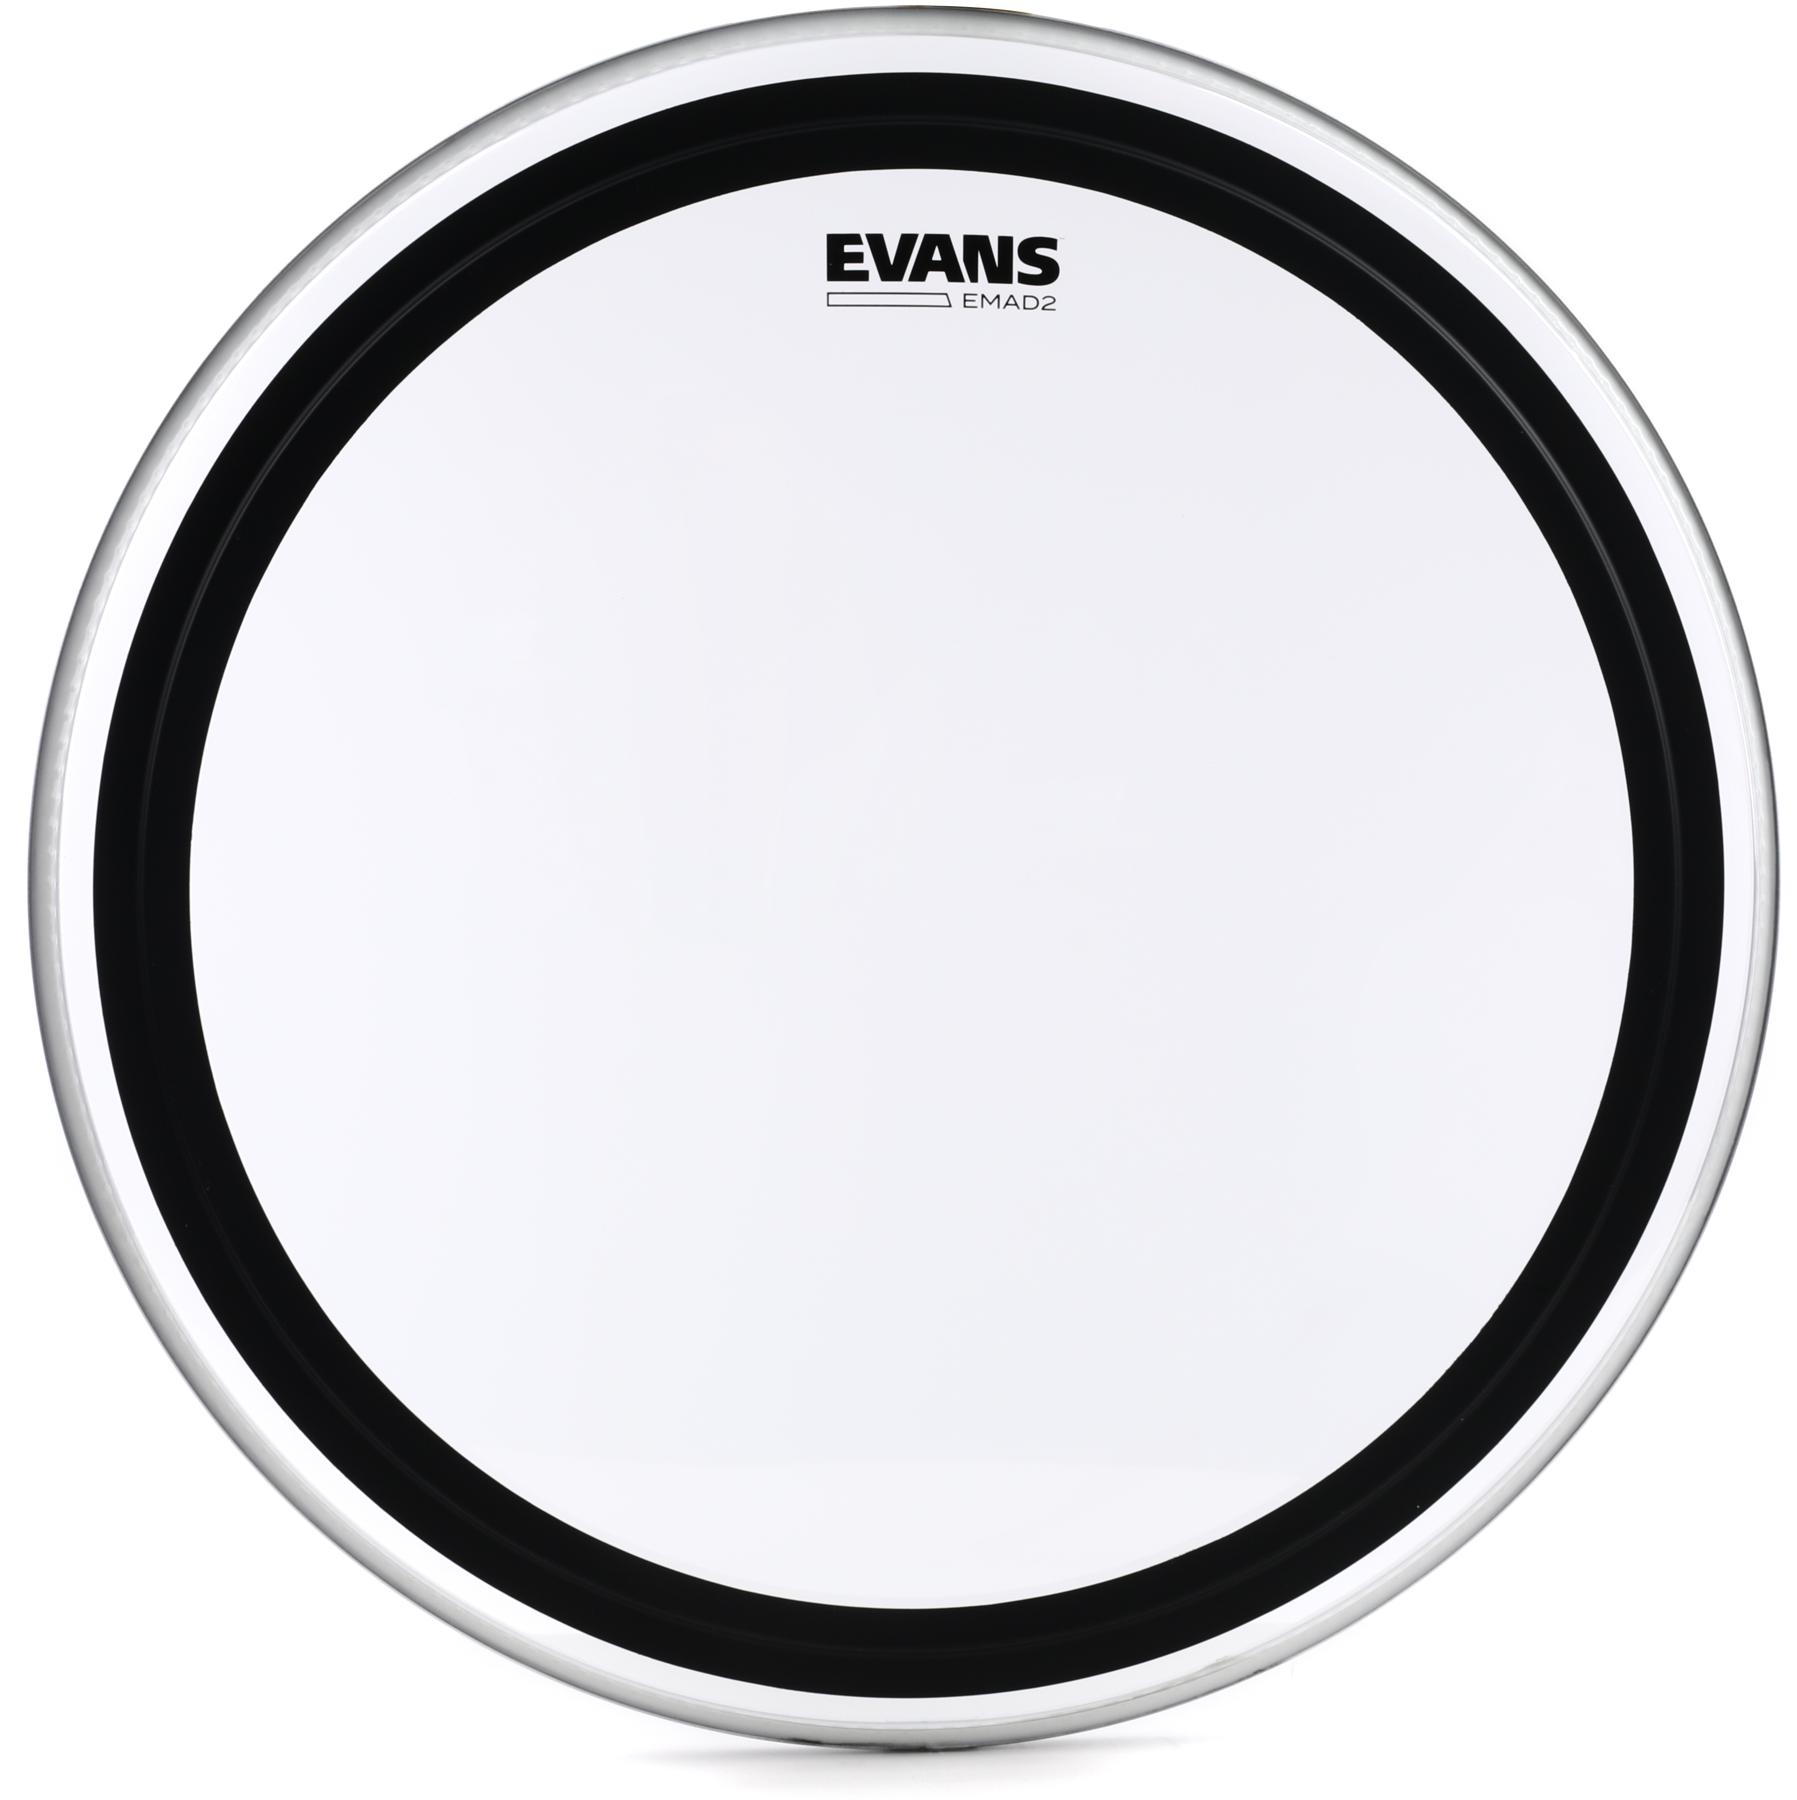 6. Evans EMAD2 Clear Bass Drum Head